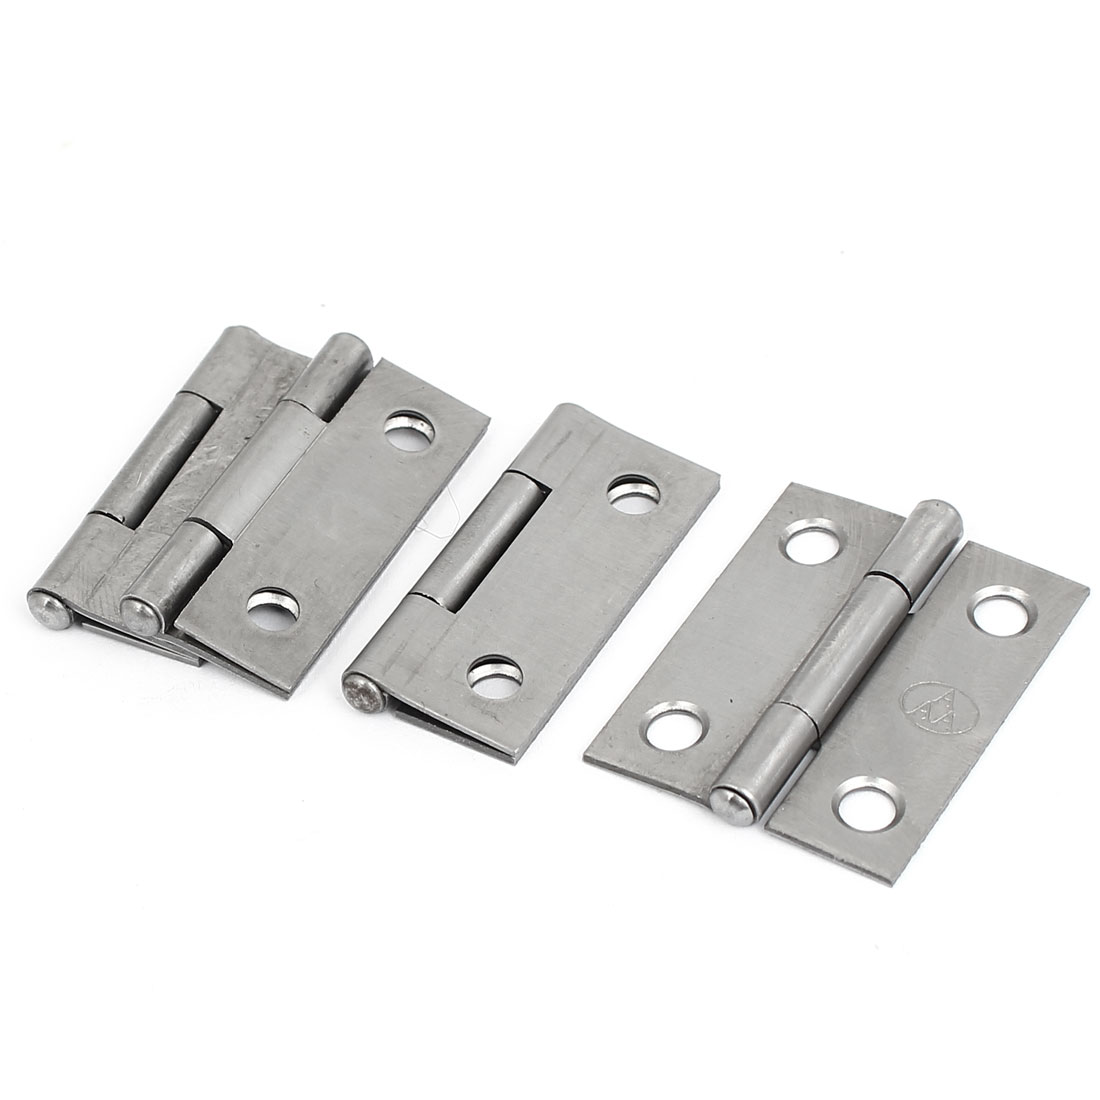 "Cupboard Showcase Door Toolbox Iron Butt Hinge Silver Gray 1.5"" Long 4pcs"